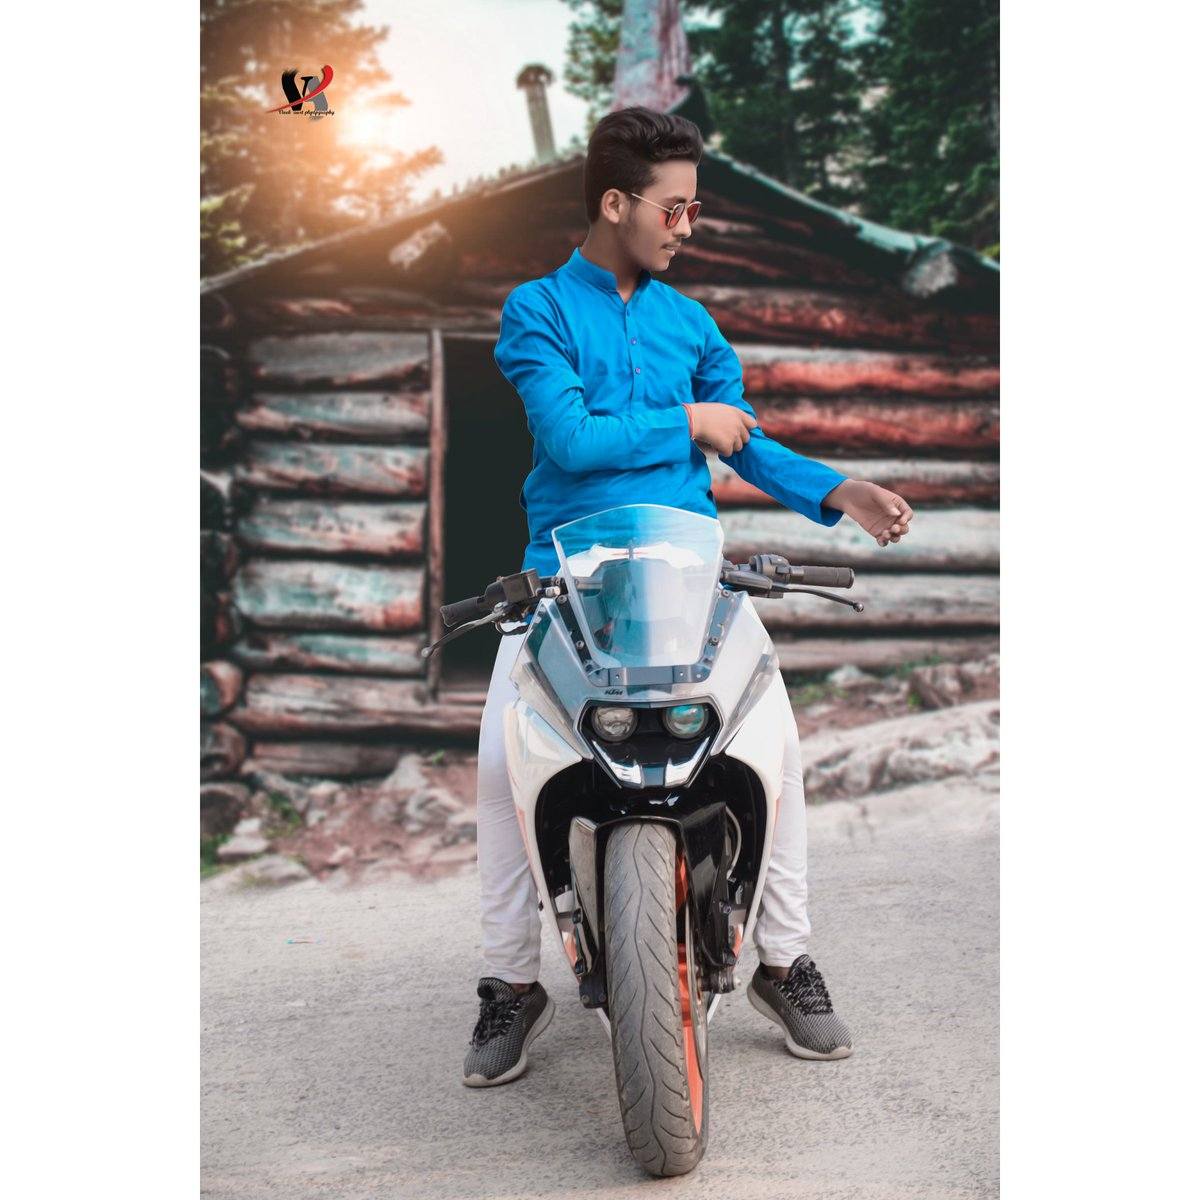 I don't give anyone👅           A region to hate me🙄 But👇         They create their own drama 😑😏 Out of #jealousy 😏😎😉  Nd thanx for this drop #Edit-: Vivek Aart do flow him  #model #desi #pose #hero #swag #ktm #ktmrc200 #bike #photoshoot #dslr #pose #desimodel #viral